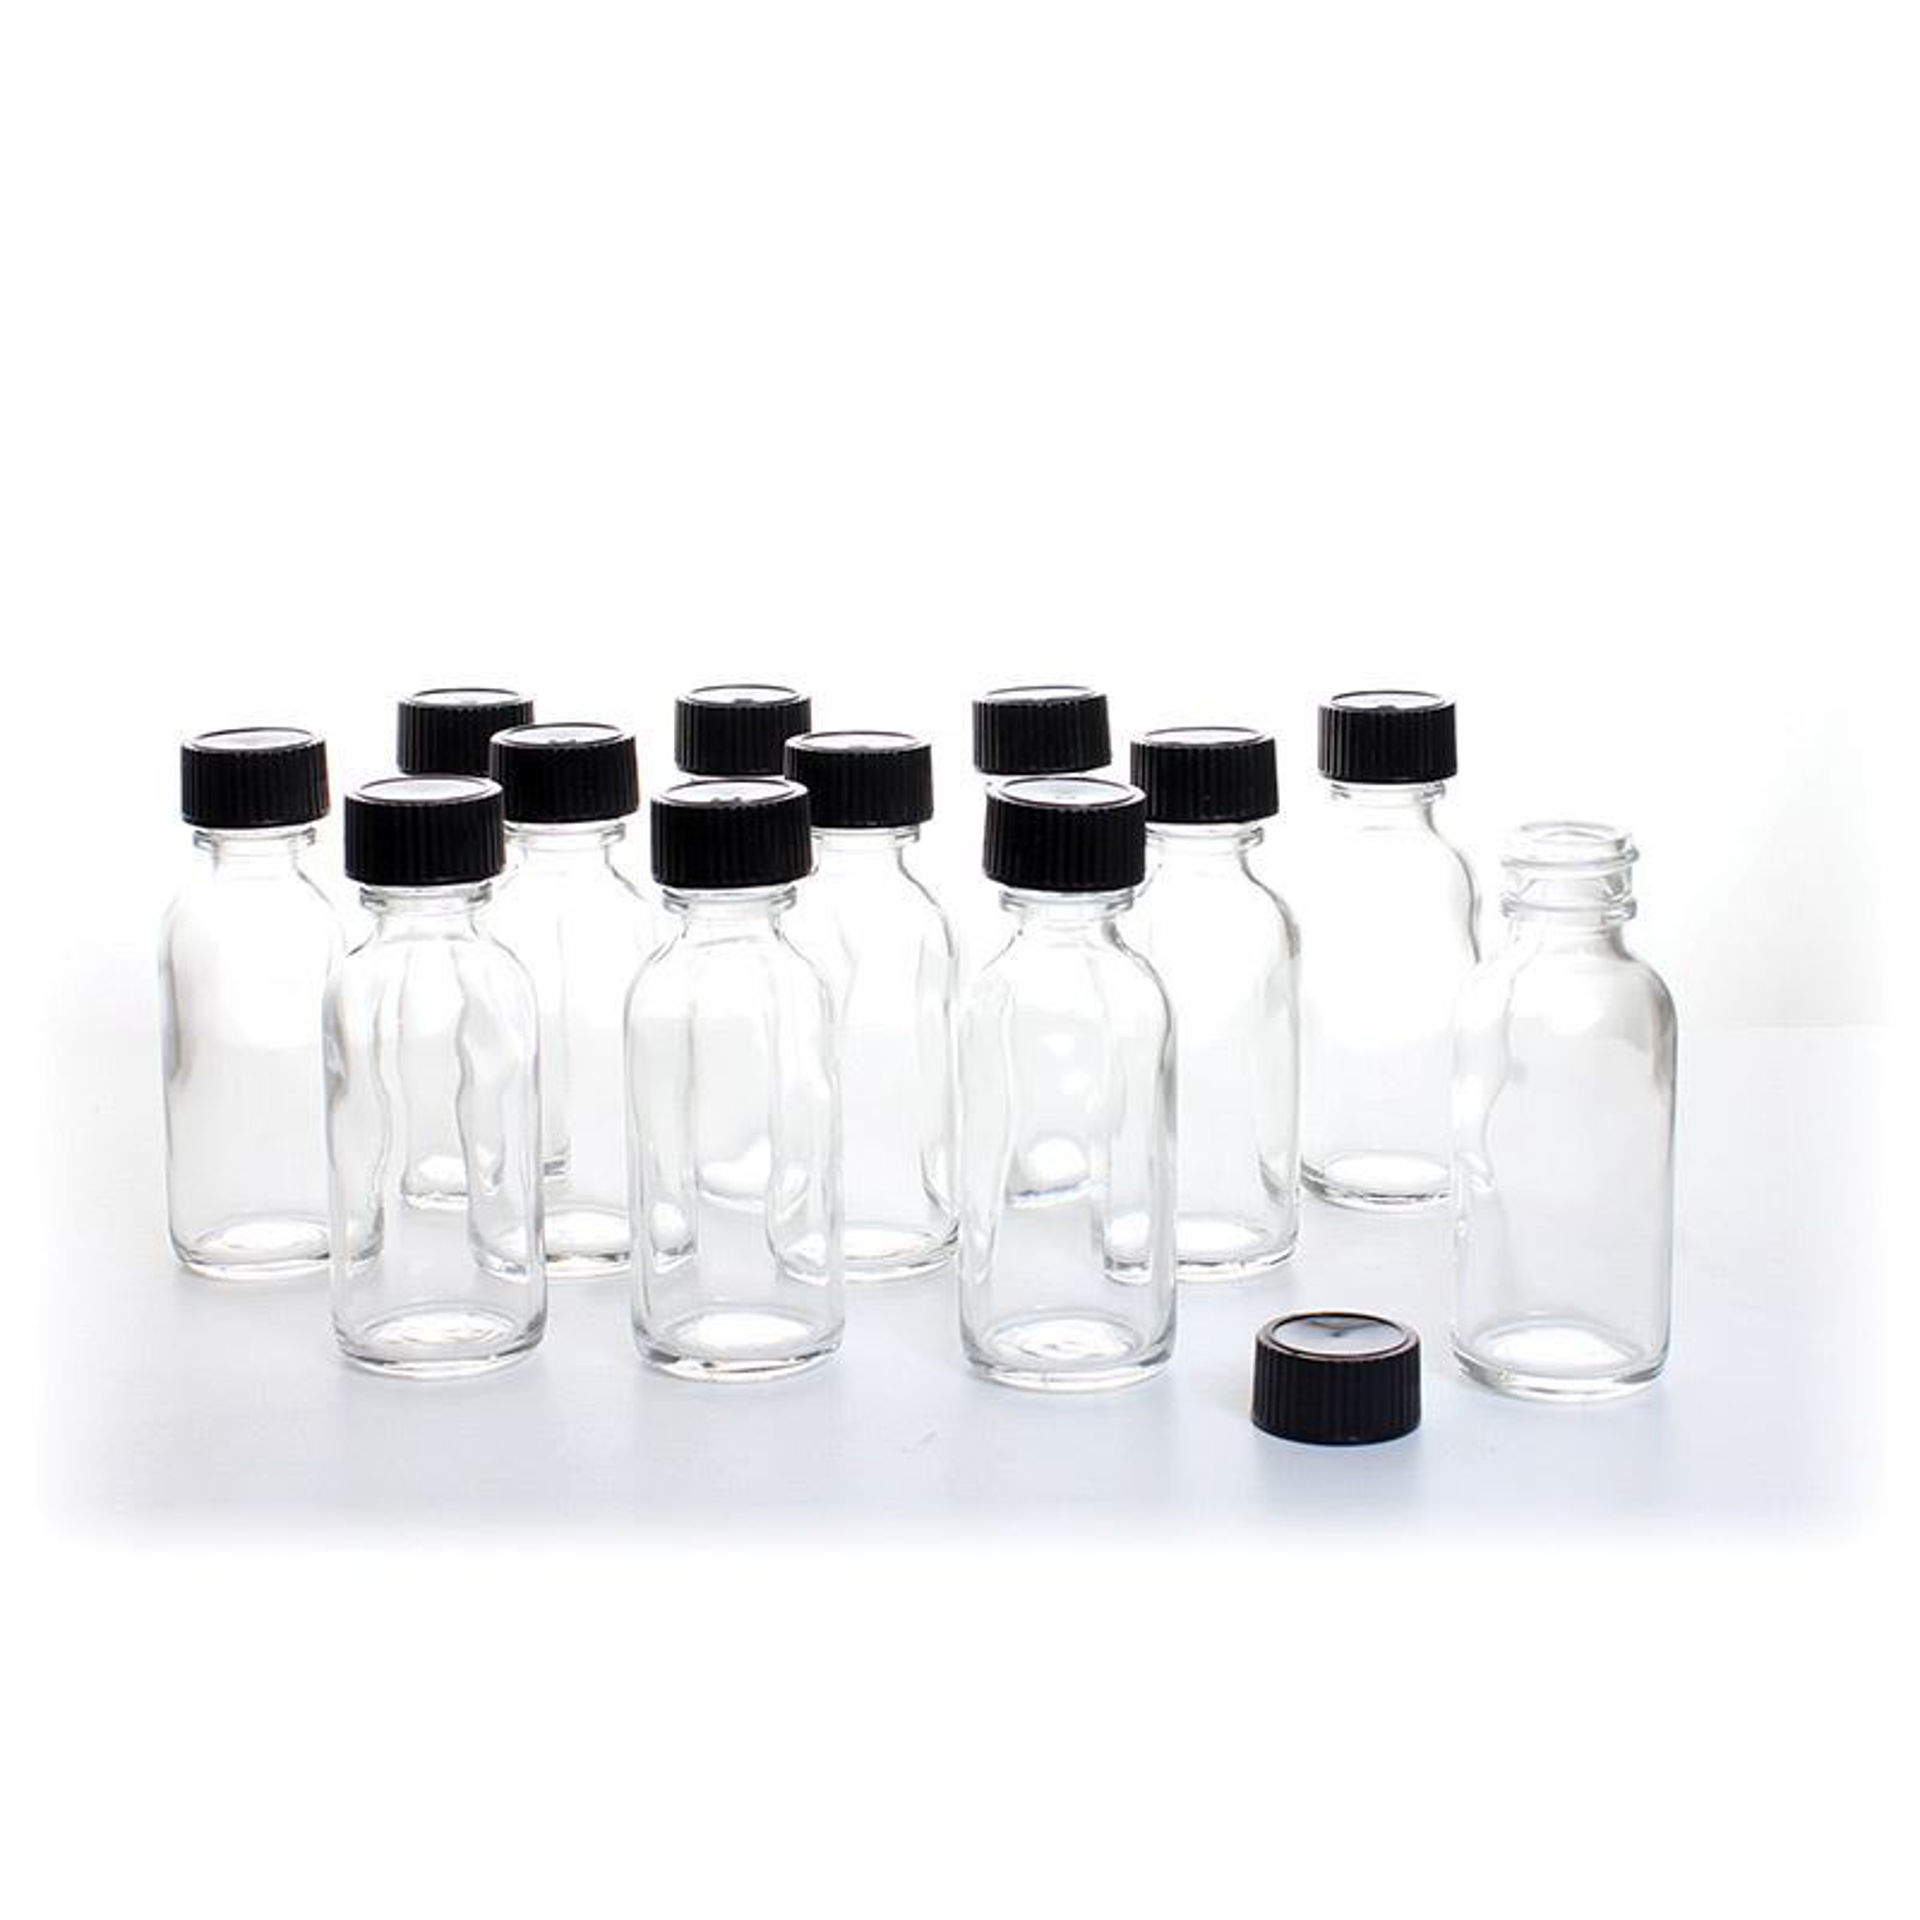 Picture of 1 oz. Glass Bottles  - Set Of 12